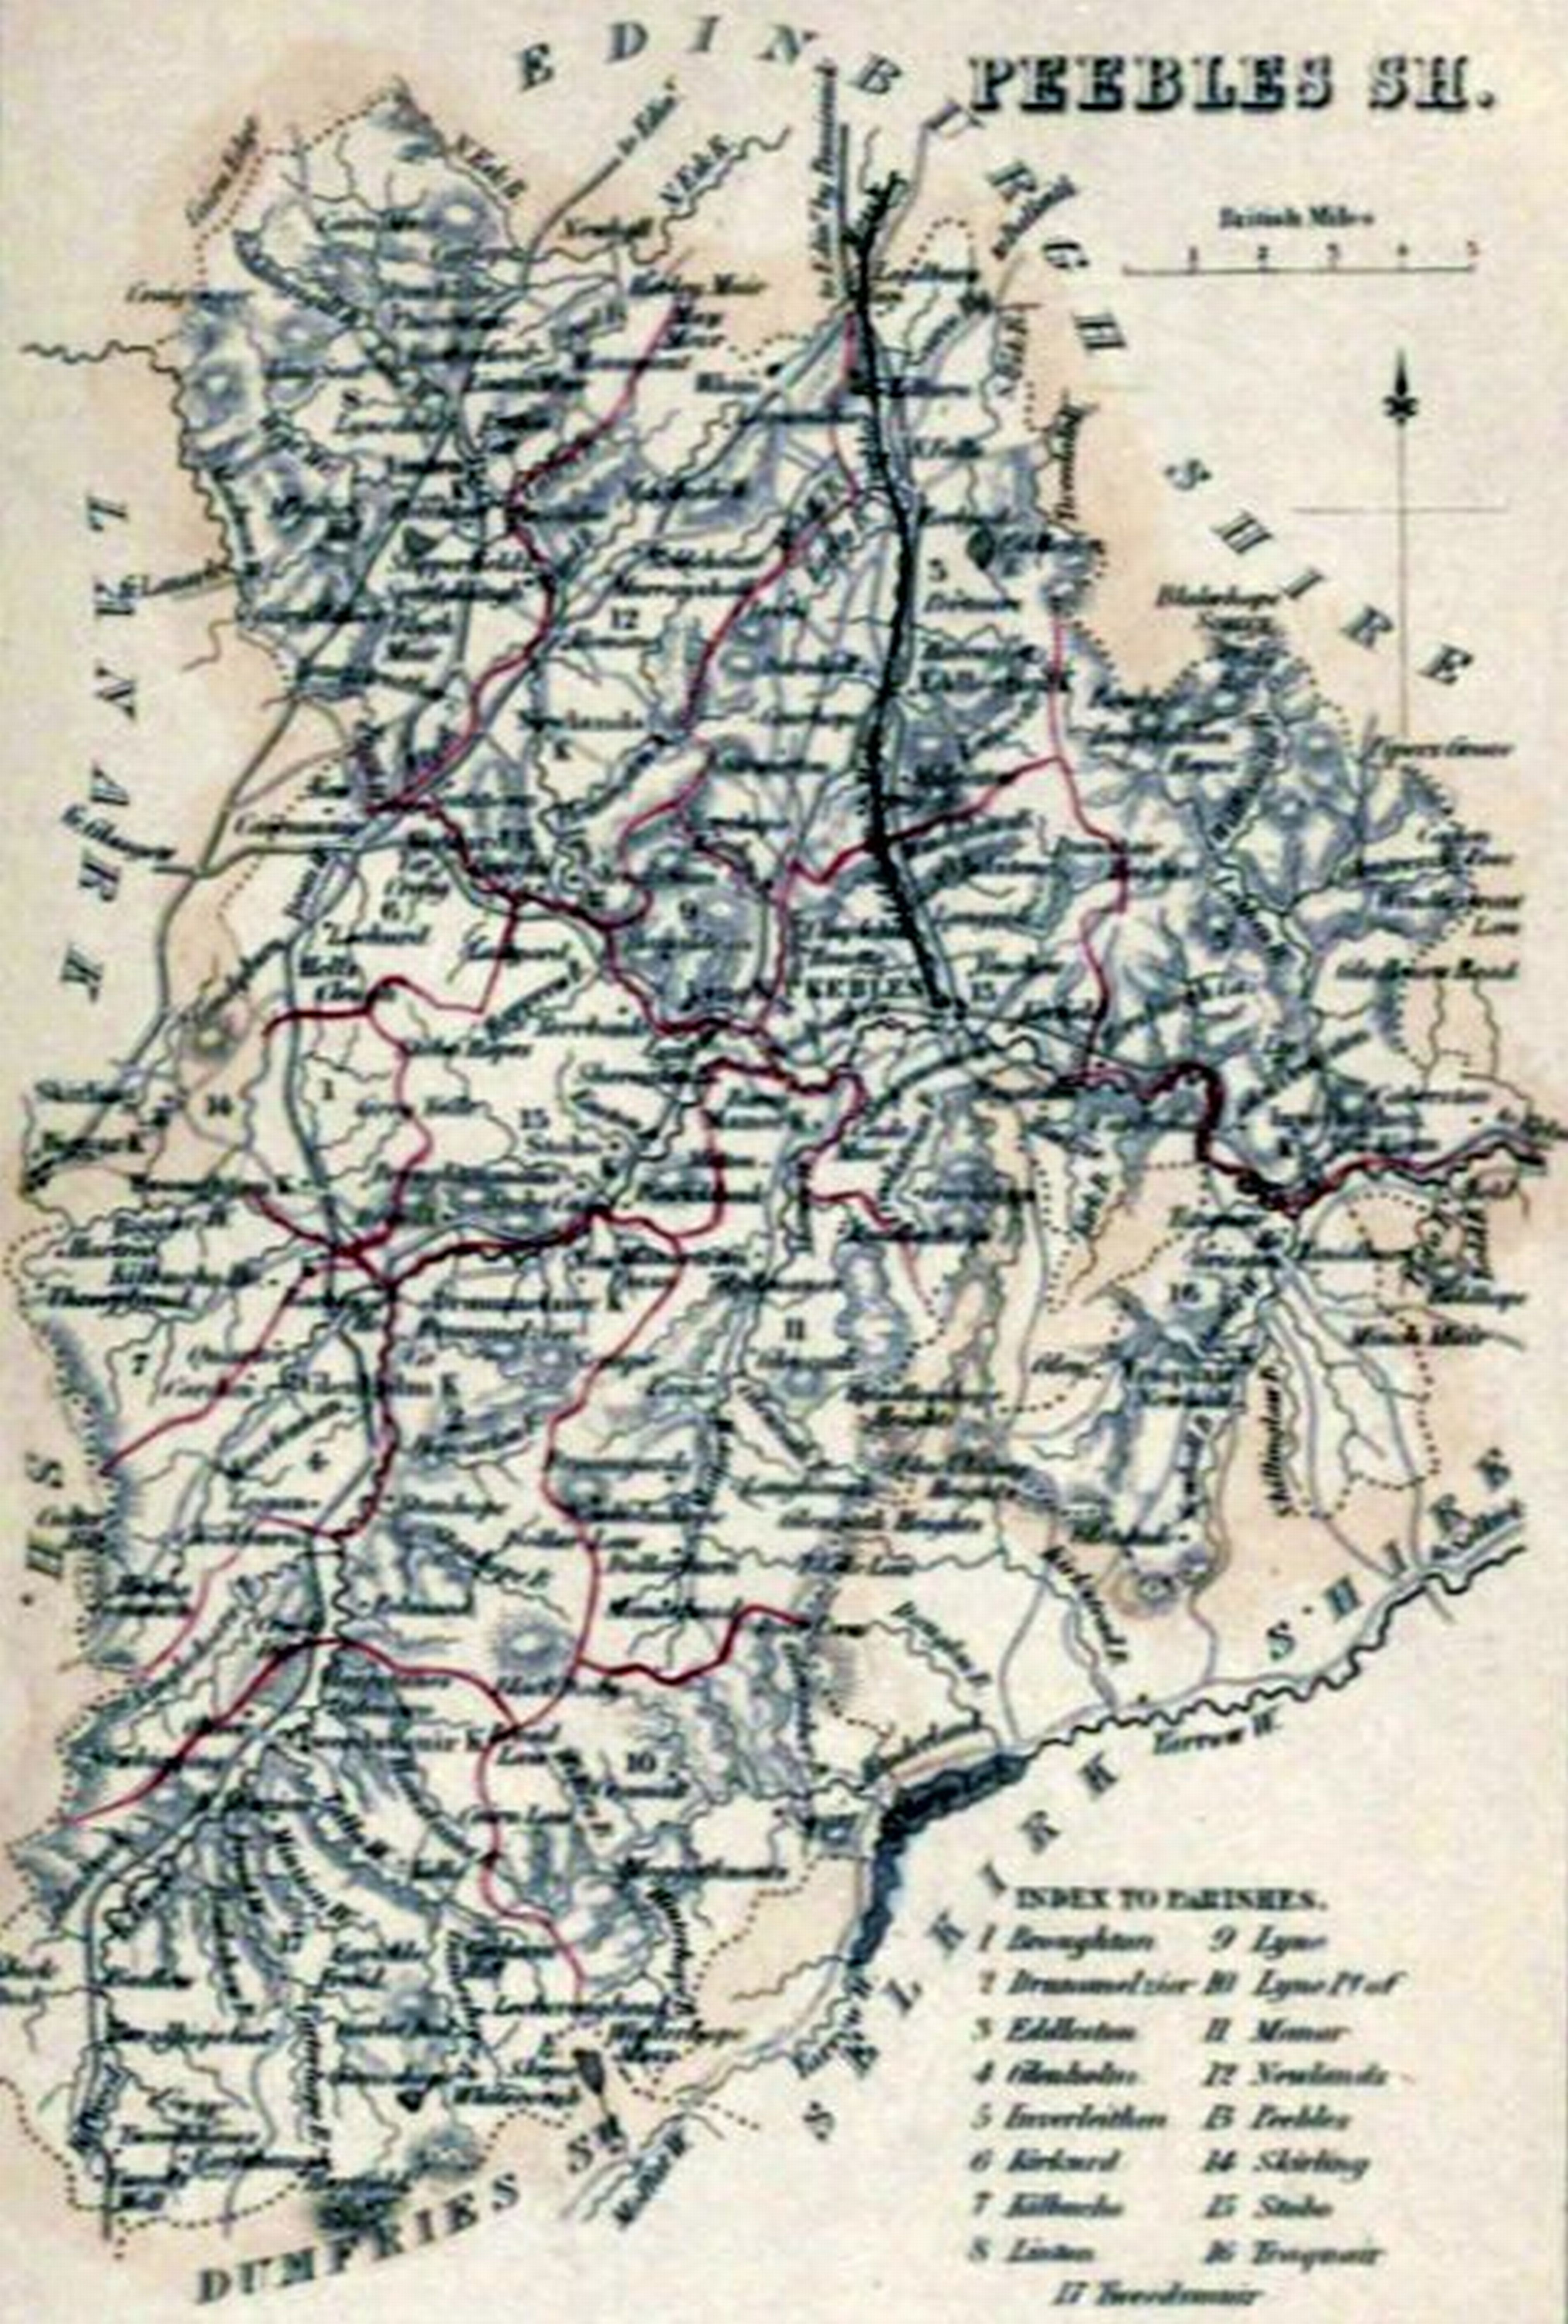 peeblesshire civil parish map.jpg